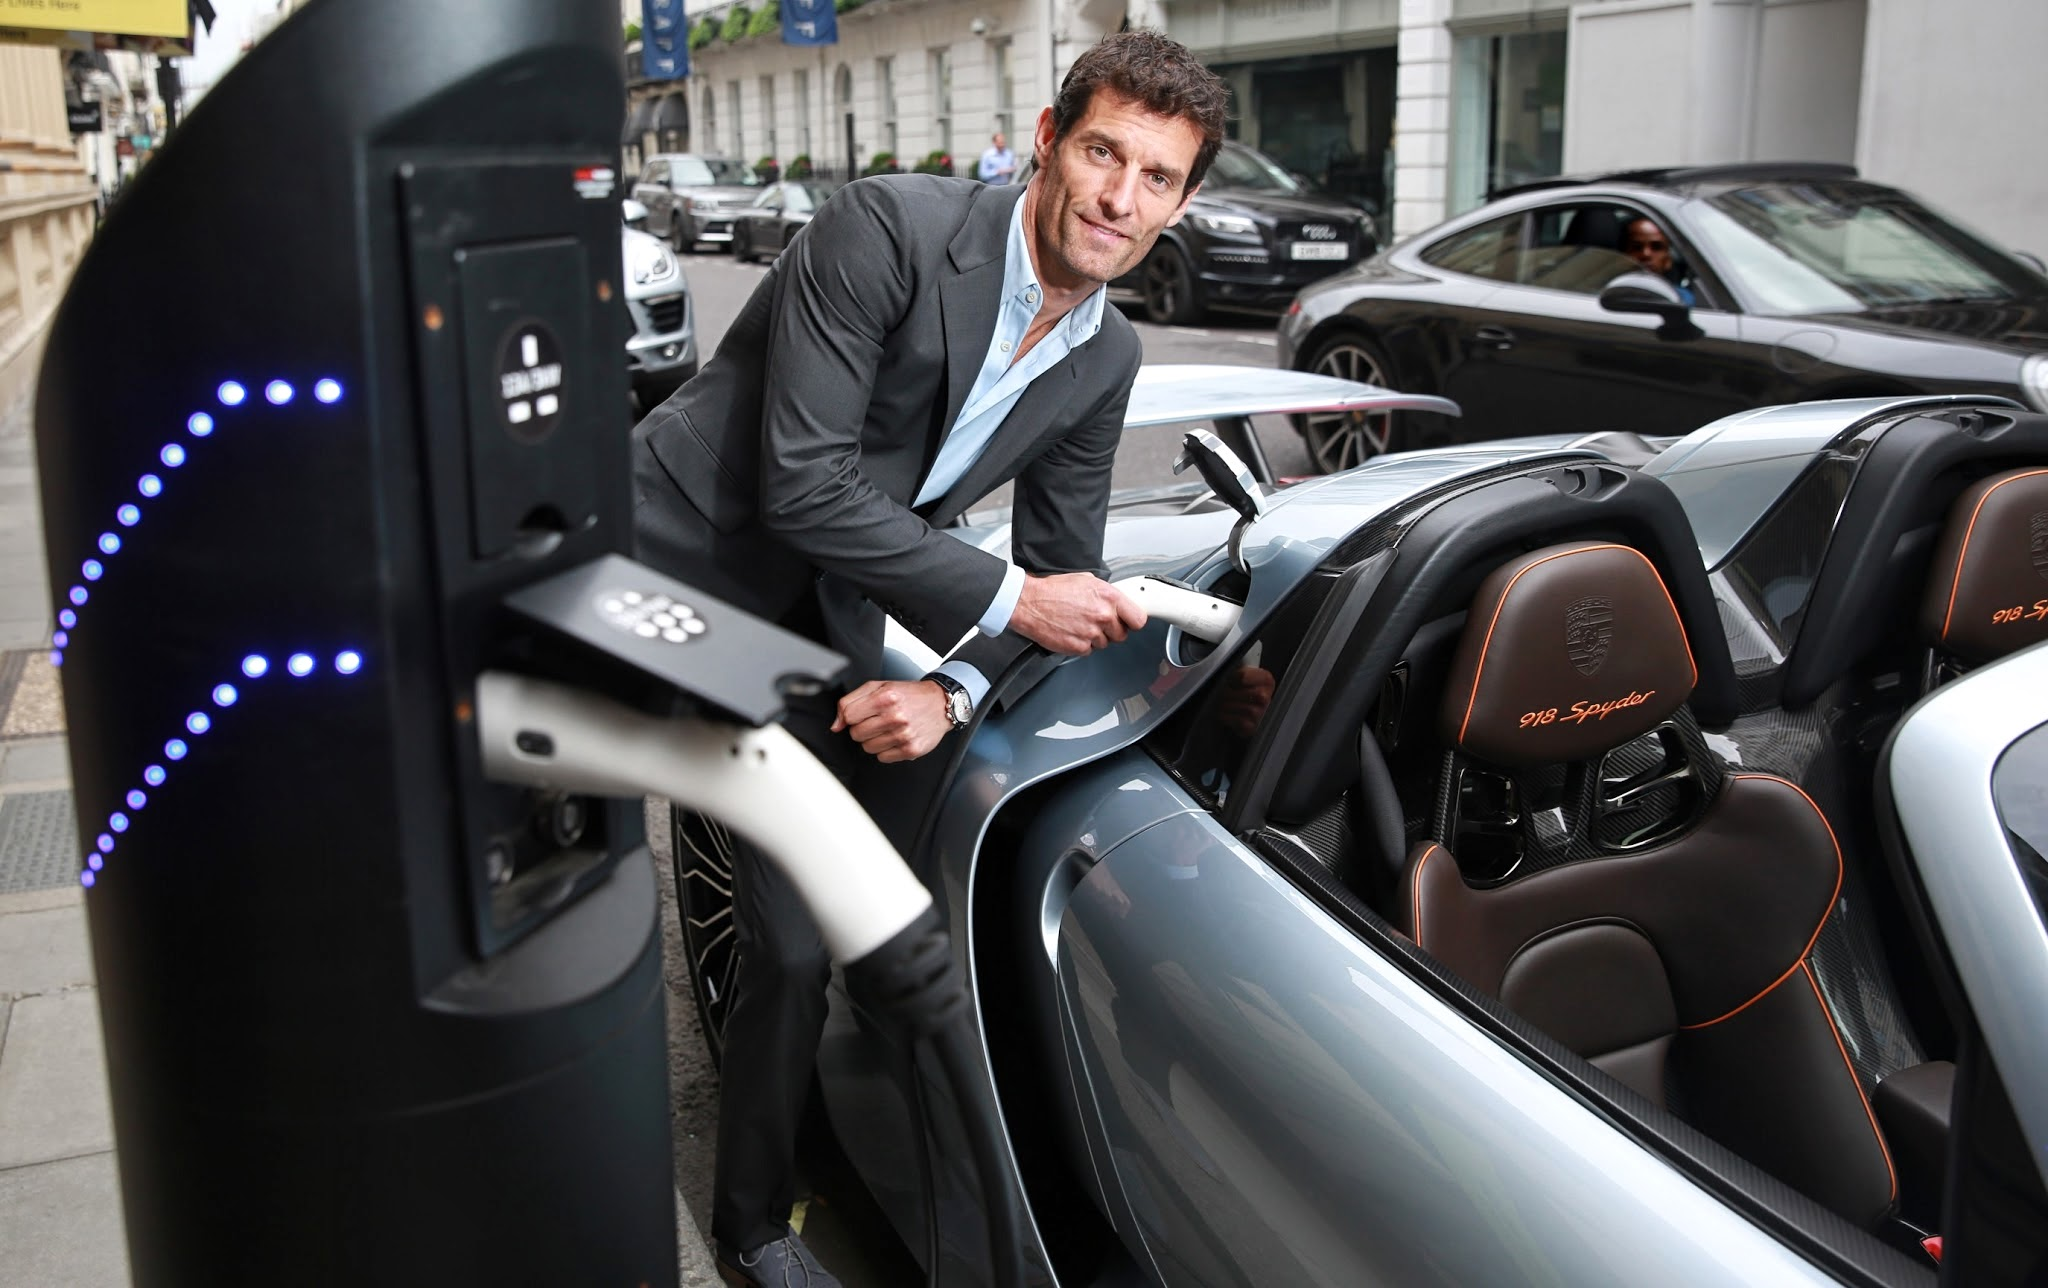 Porsche_Works_Le_Mans_driver_Mark_Webber_recharges_the_Porsche_918_Spyder_in_London Marvelous Porsche 918 Spyder Mark Webber Cars Trend